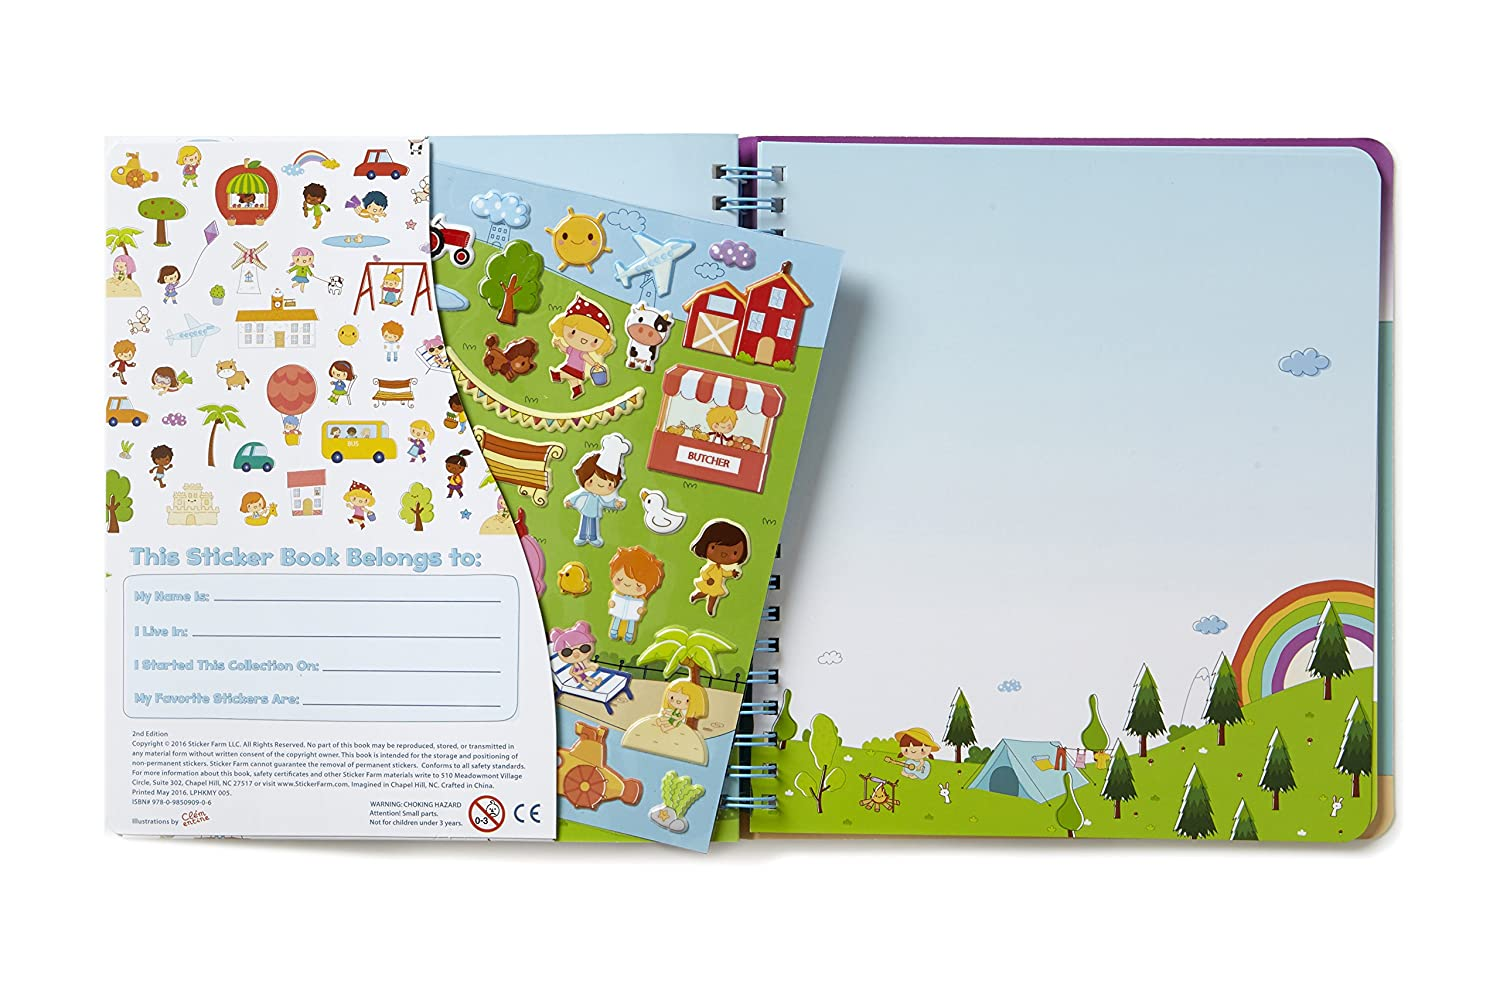 Sticker Farm Original Series Travel-Size Small Activity Album with 30 Puffy Stickers to Start Collection Reusable Sticker Album for Collecting Stickers 7.5 x 7 in